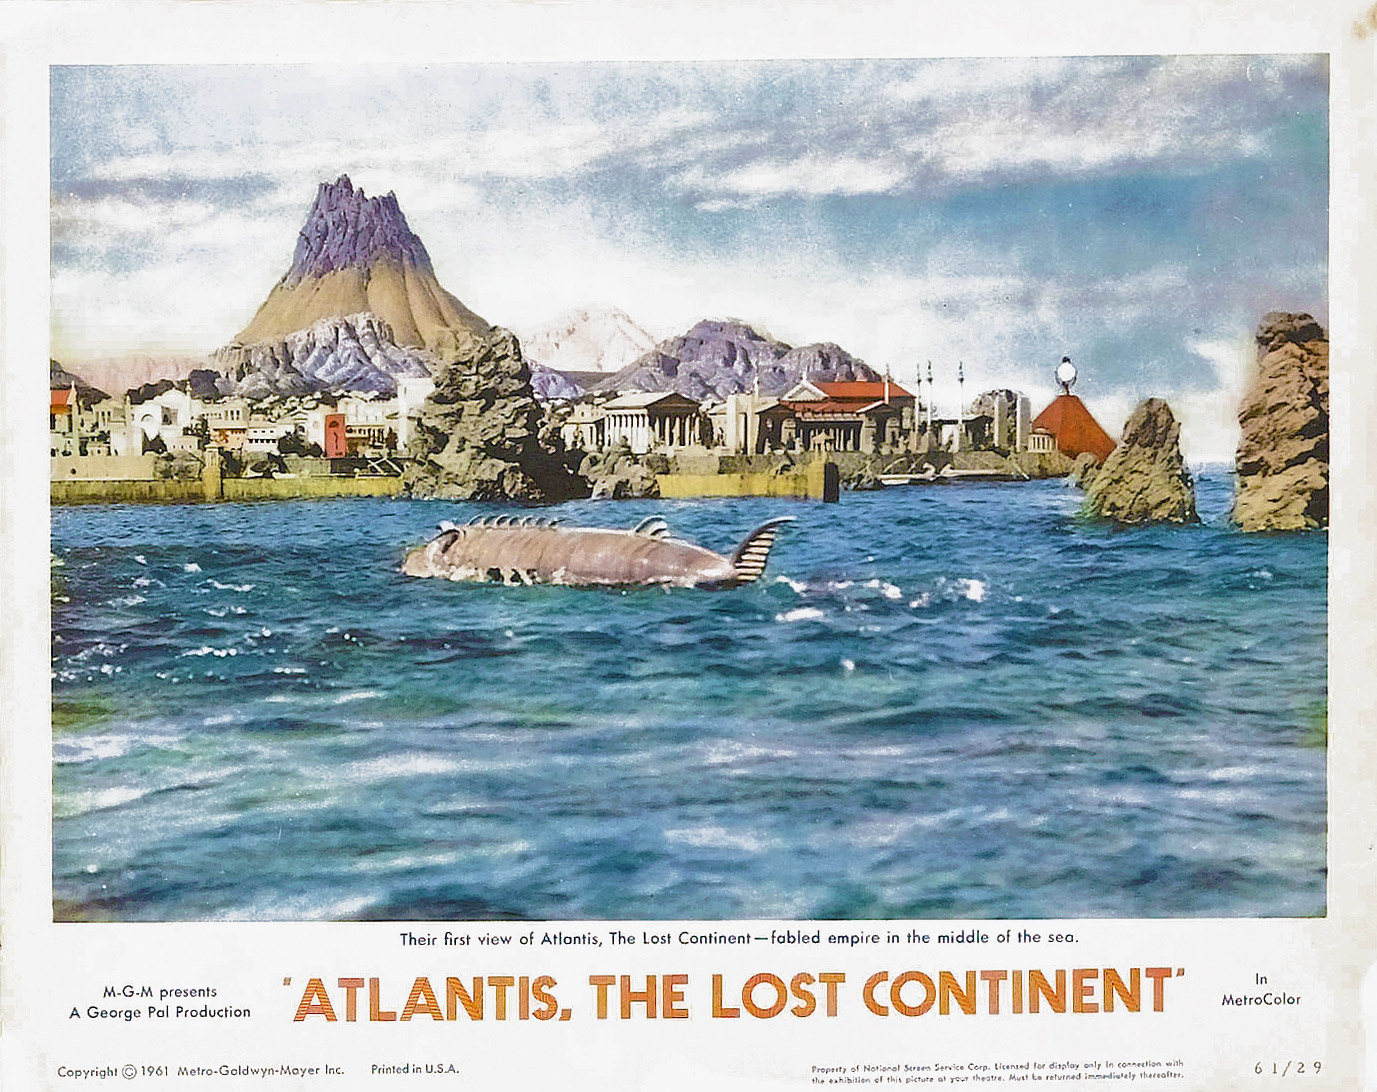 Photo de 'Atlantis terre engloutie' - ©1961 MGM - Atlantis terre engloutie (Atlantis, the Lost Continent) - cliquez sur la photo pour la fermer